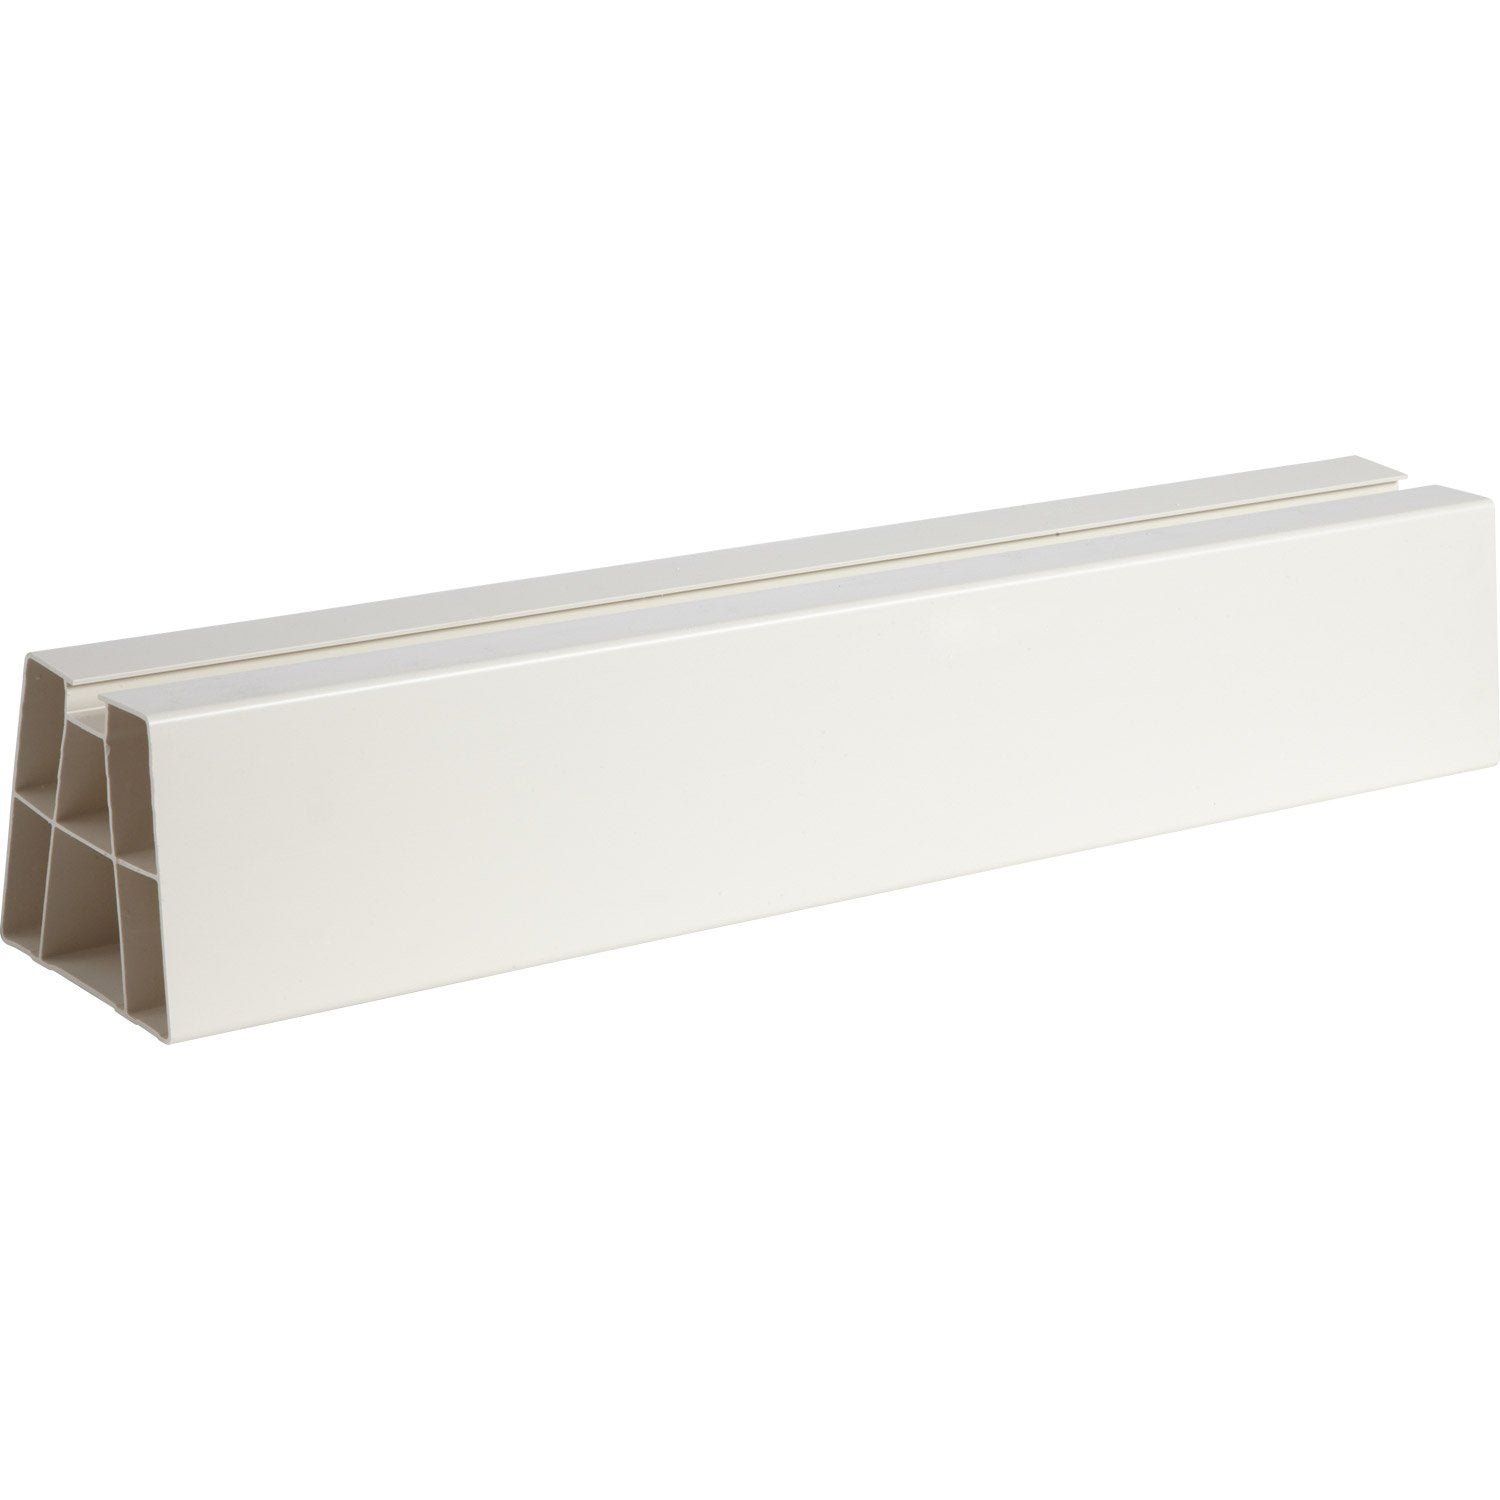 Leroy merlin revetement sol pvc maison design - Canvas pvc leroy merlin ...